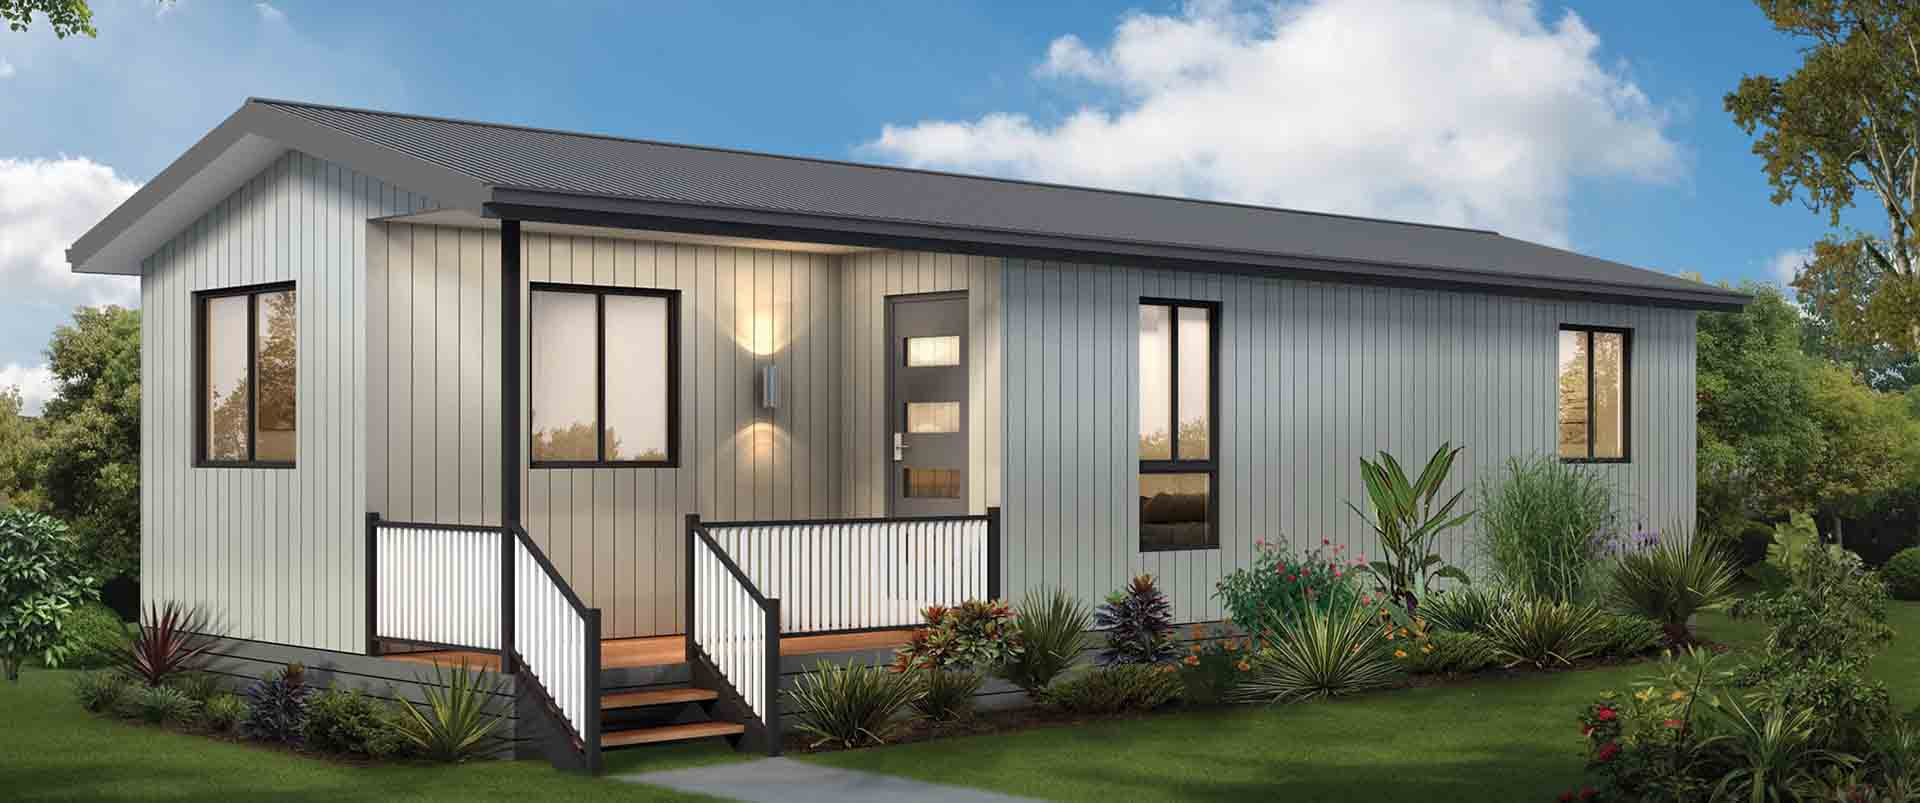 The advantages and disadvantages of   buying prefabricated houses